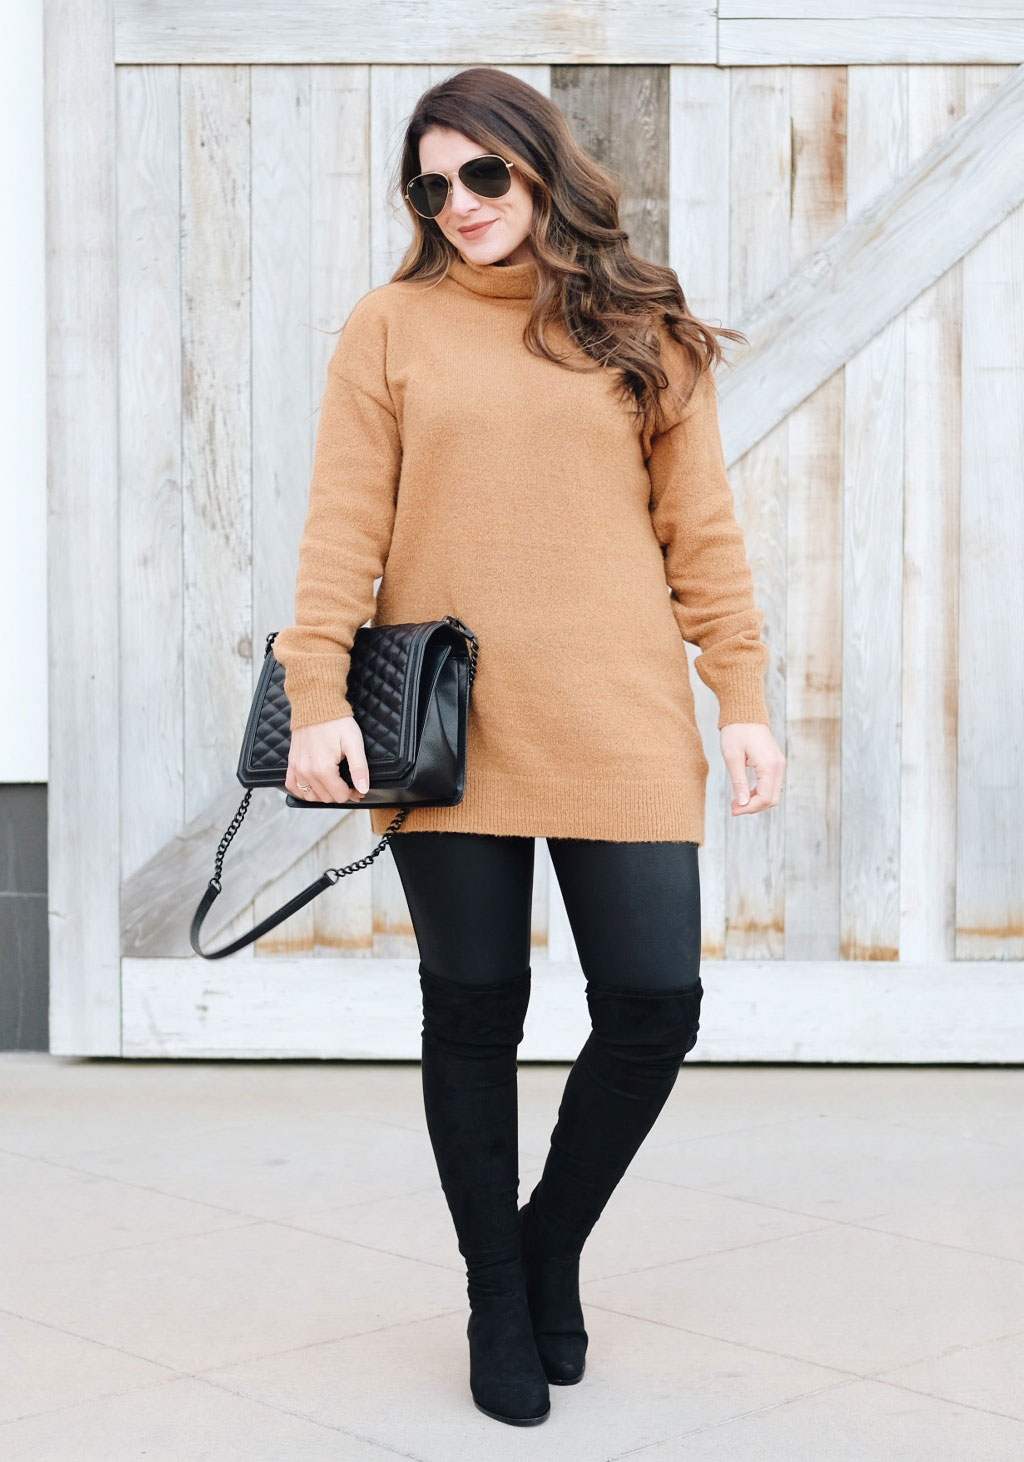 Second trimester maternity outfit. Spanx faux leather moto leggings, Steve Madden over the knee boots, Rebecca Minkoff Love crossbody bag, and tunic sweater.